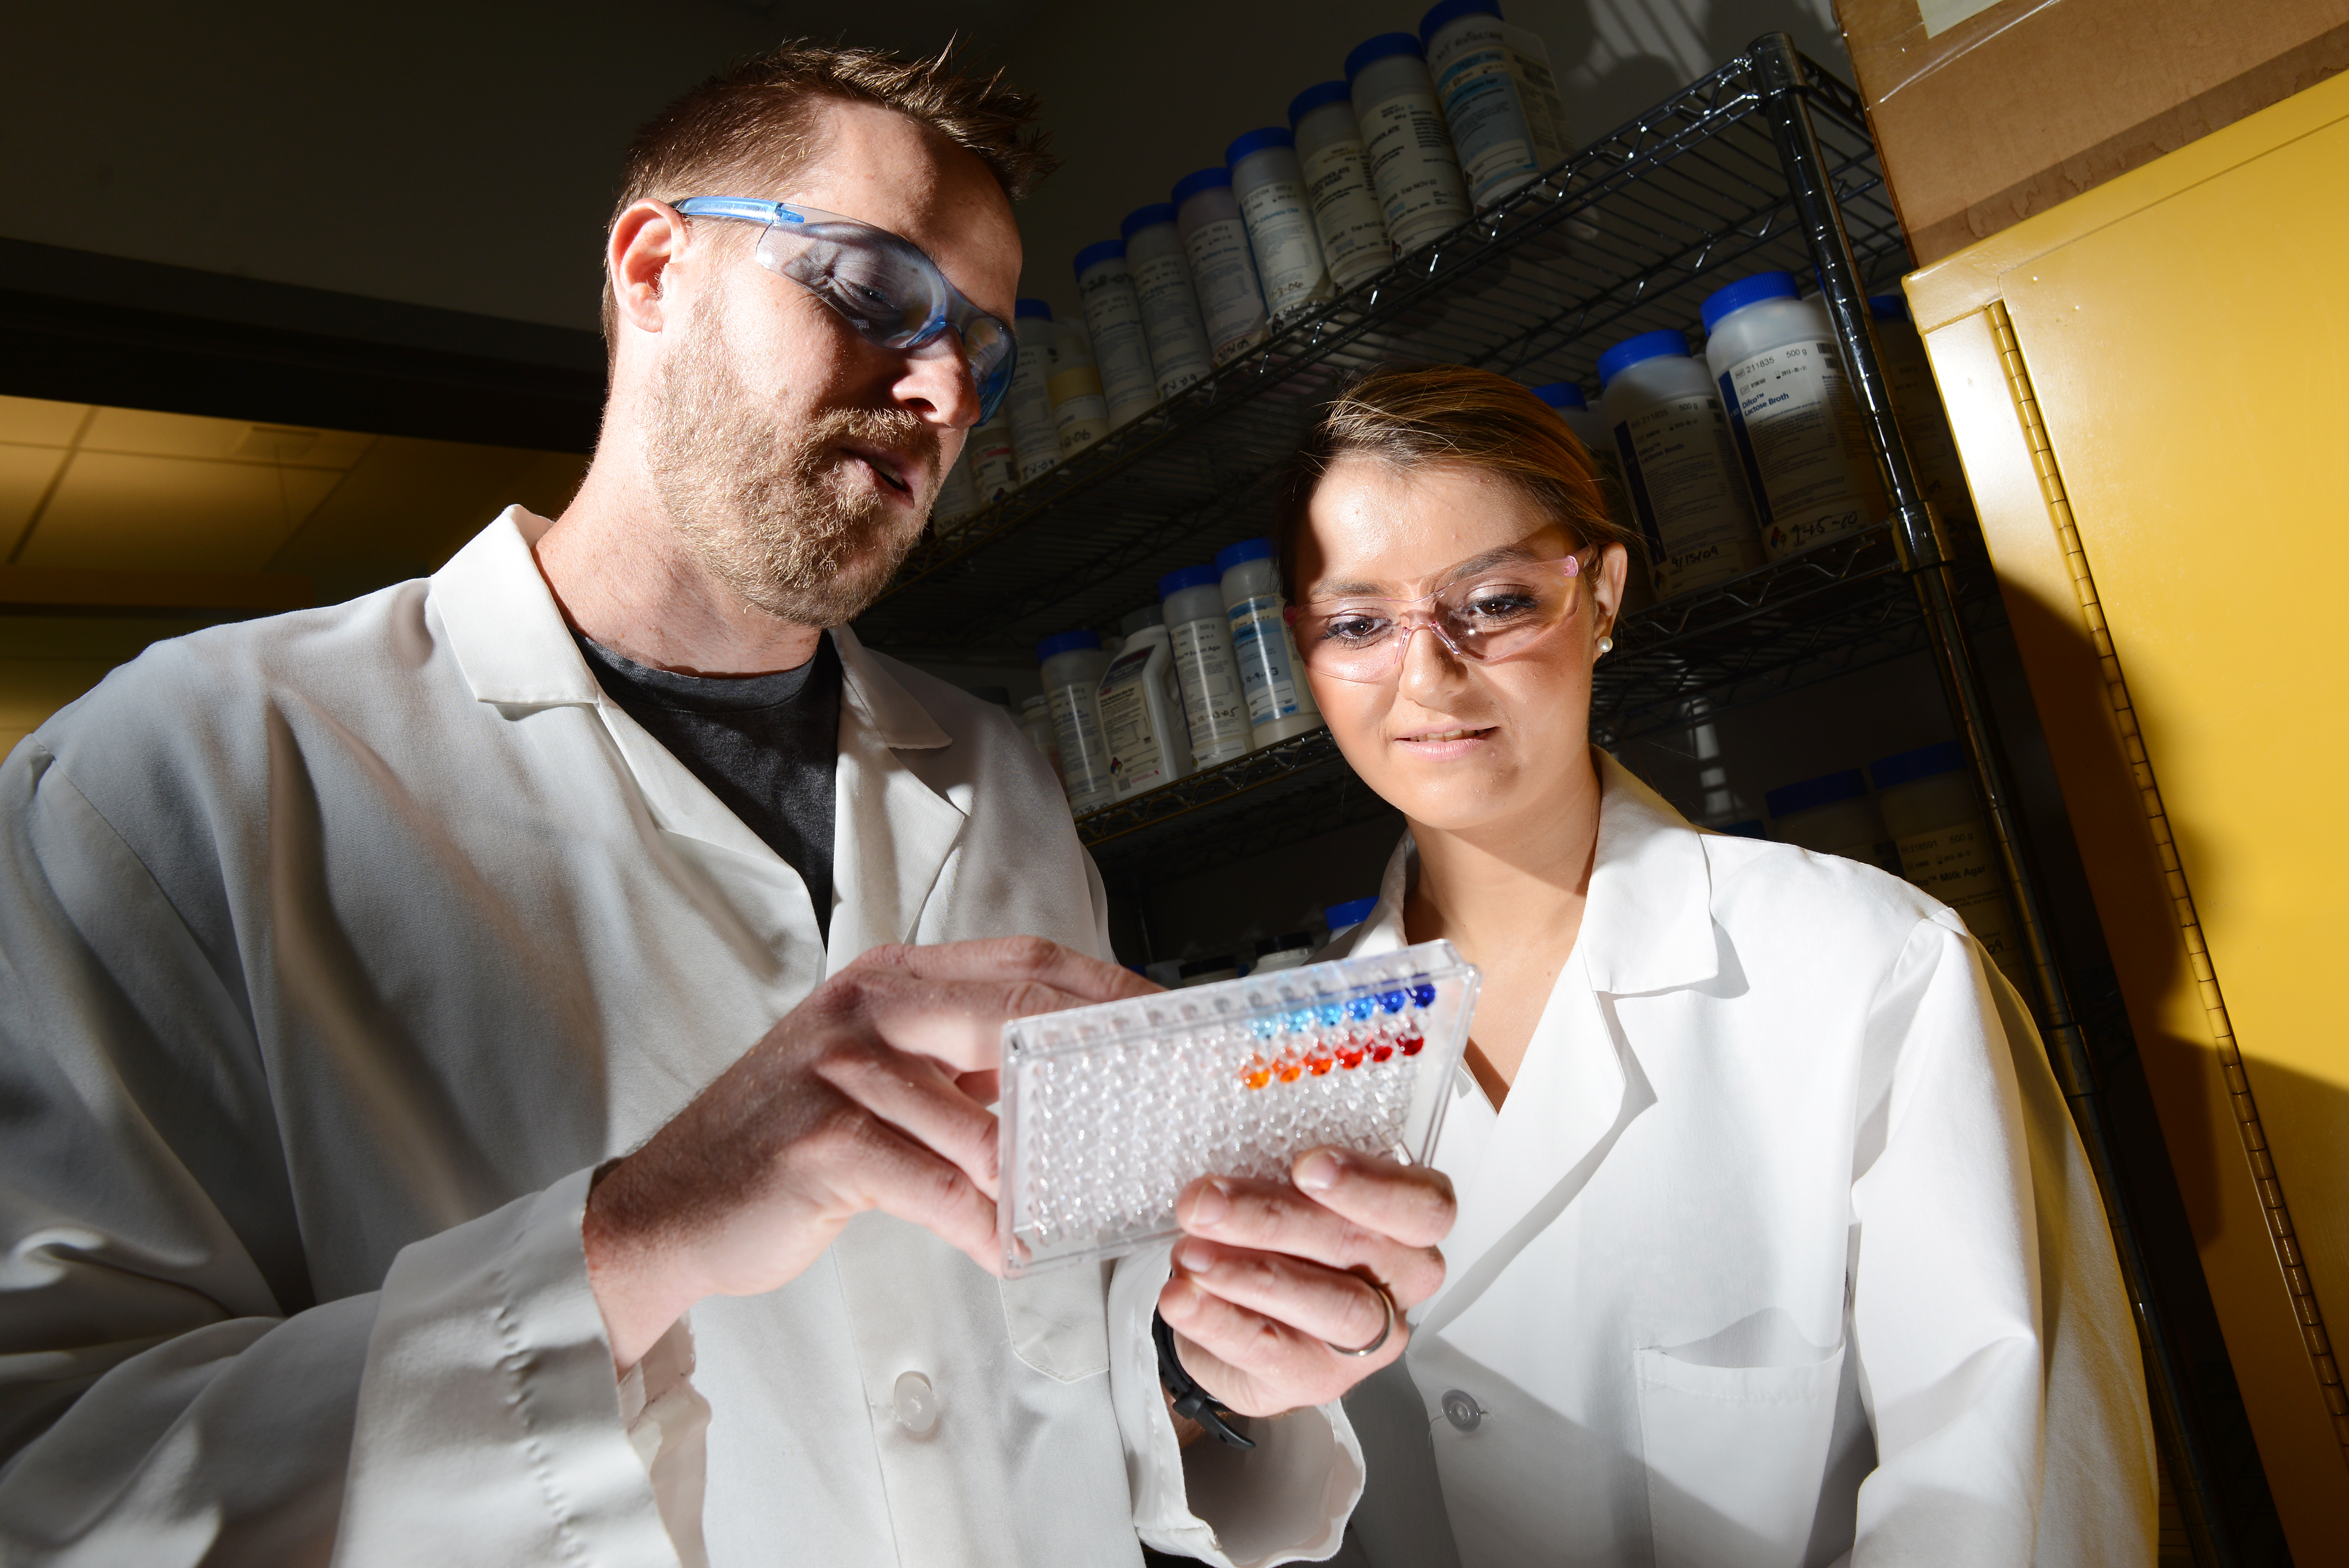 Professor and student looking at chemical material